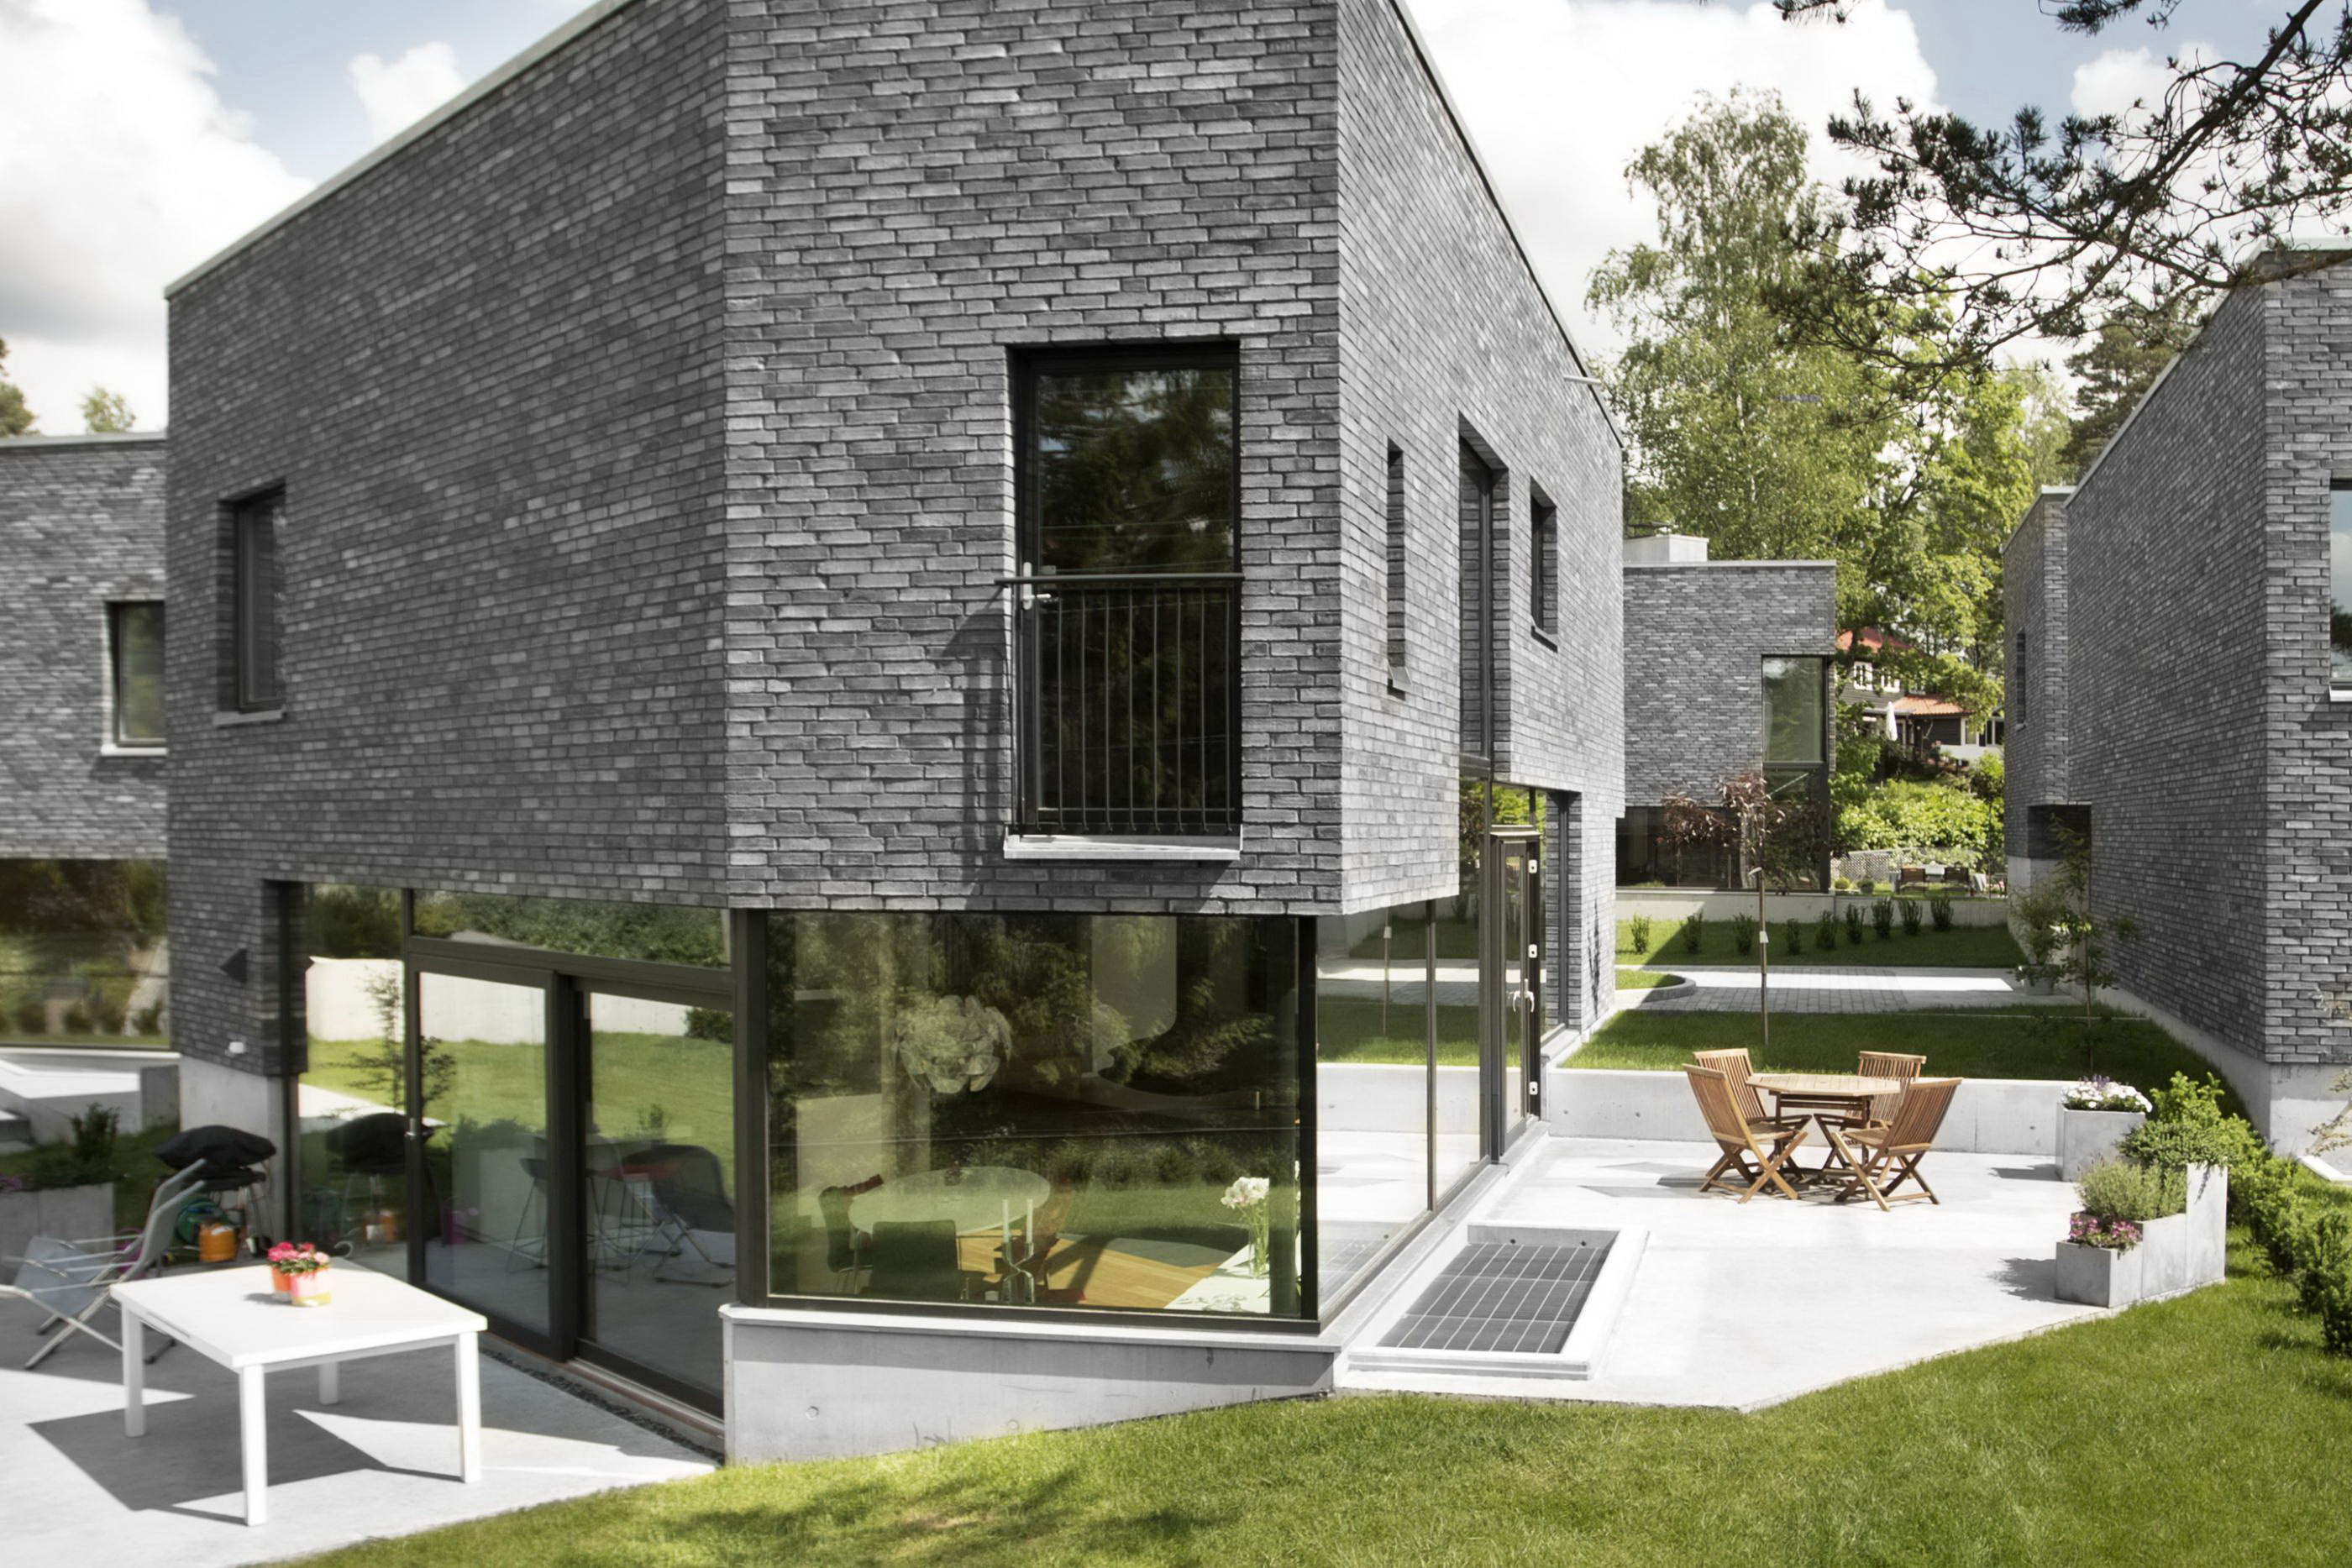 Gregers Grams Houses by R21 Arkitekter